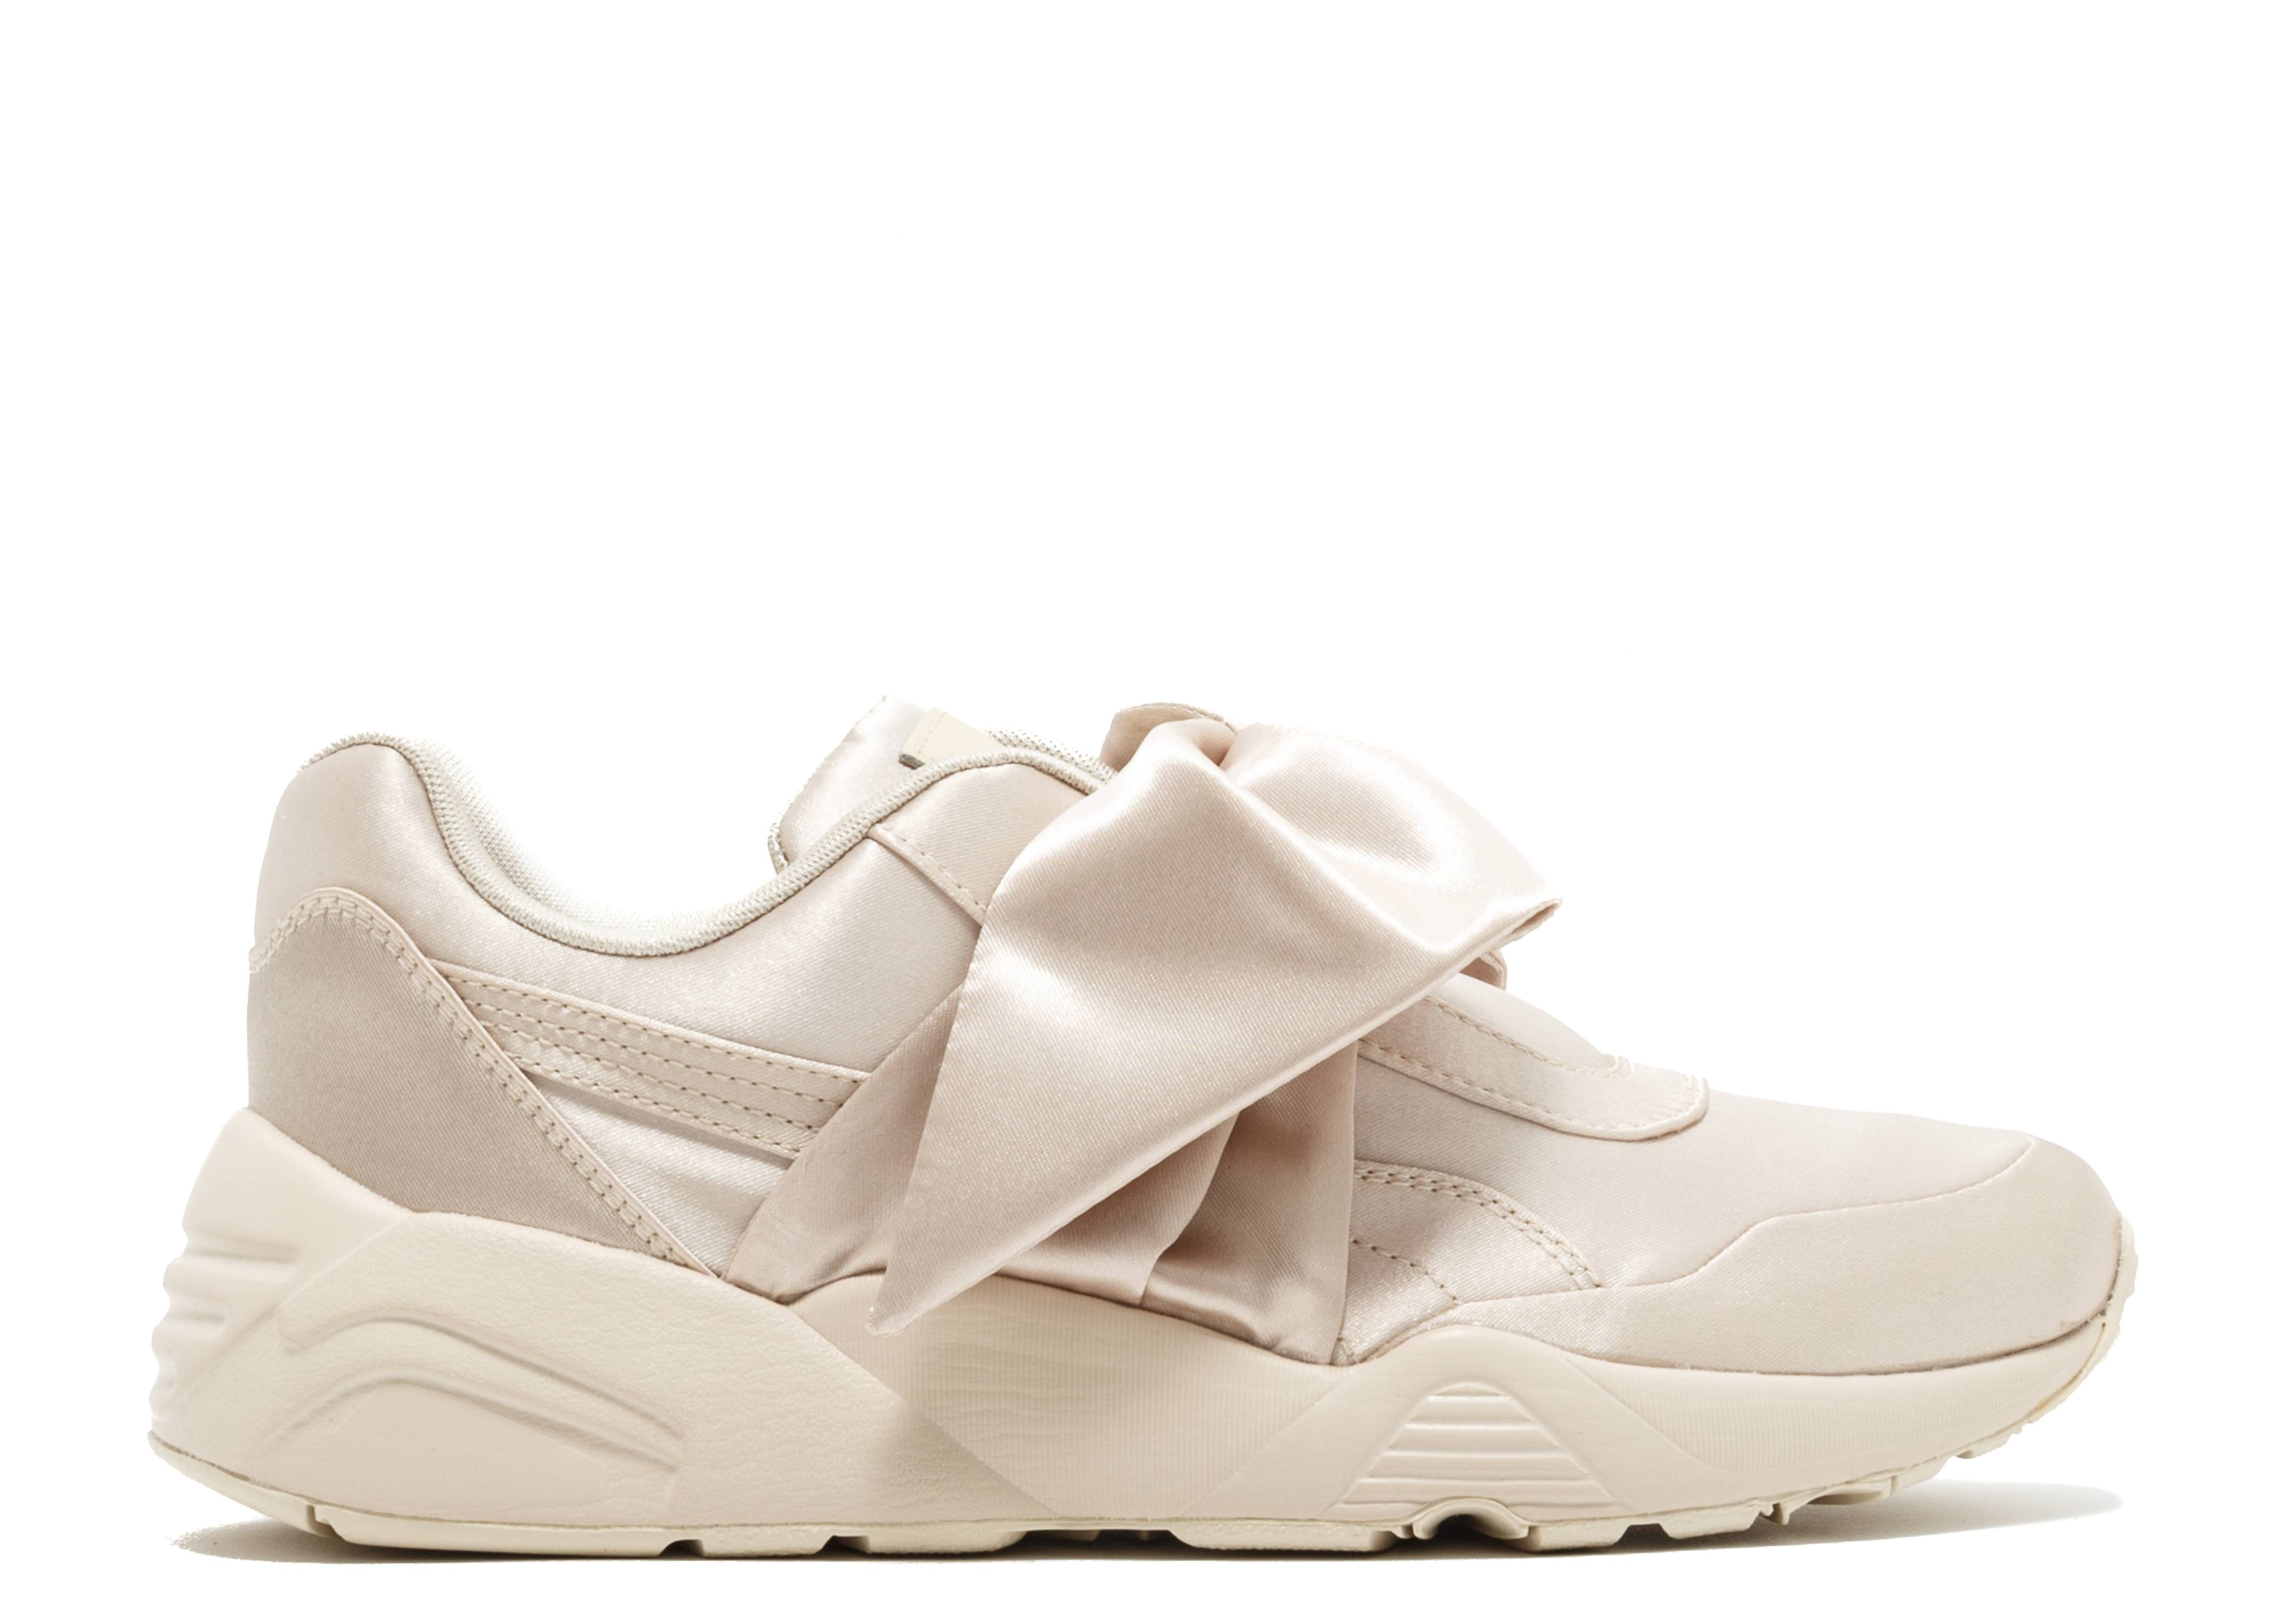 low priced bab2c 00a6d RIHANNA X PUMA FENTY BOW TRINOMIC